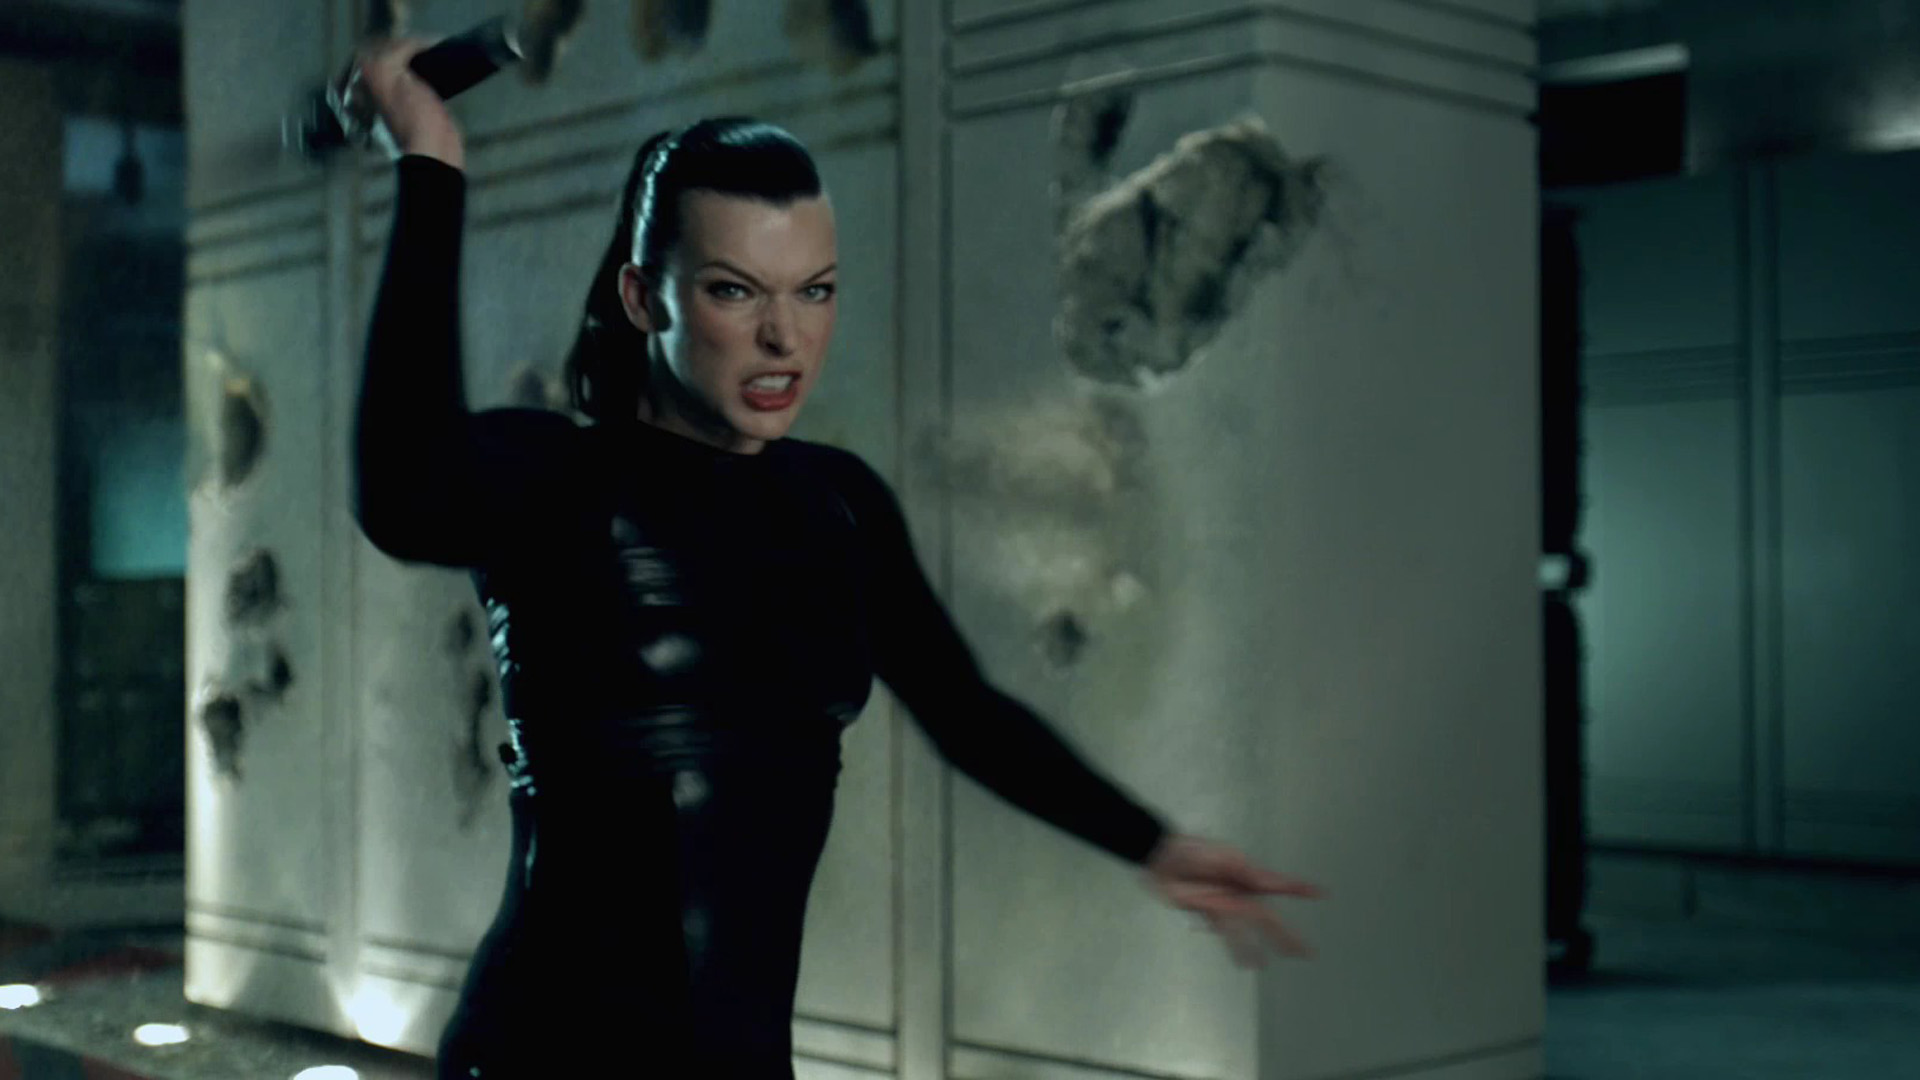 Alice Resident Evil Afterlife wallpaper Movie wallpapers